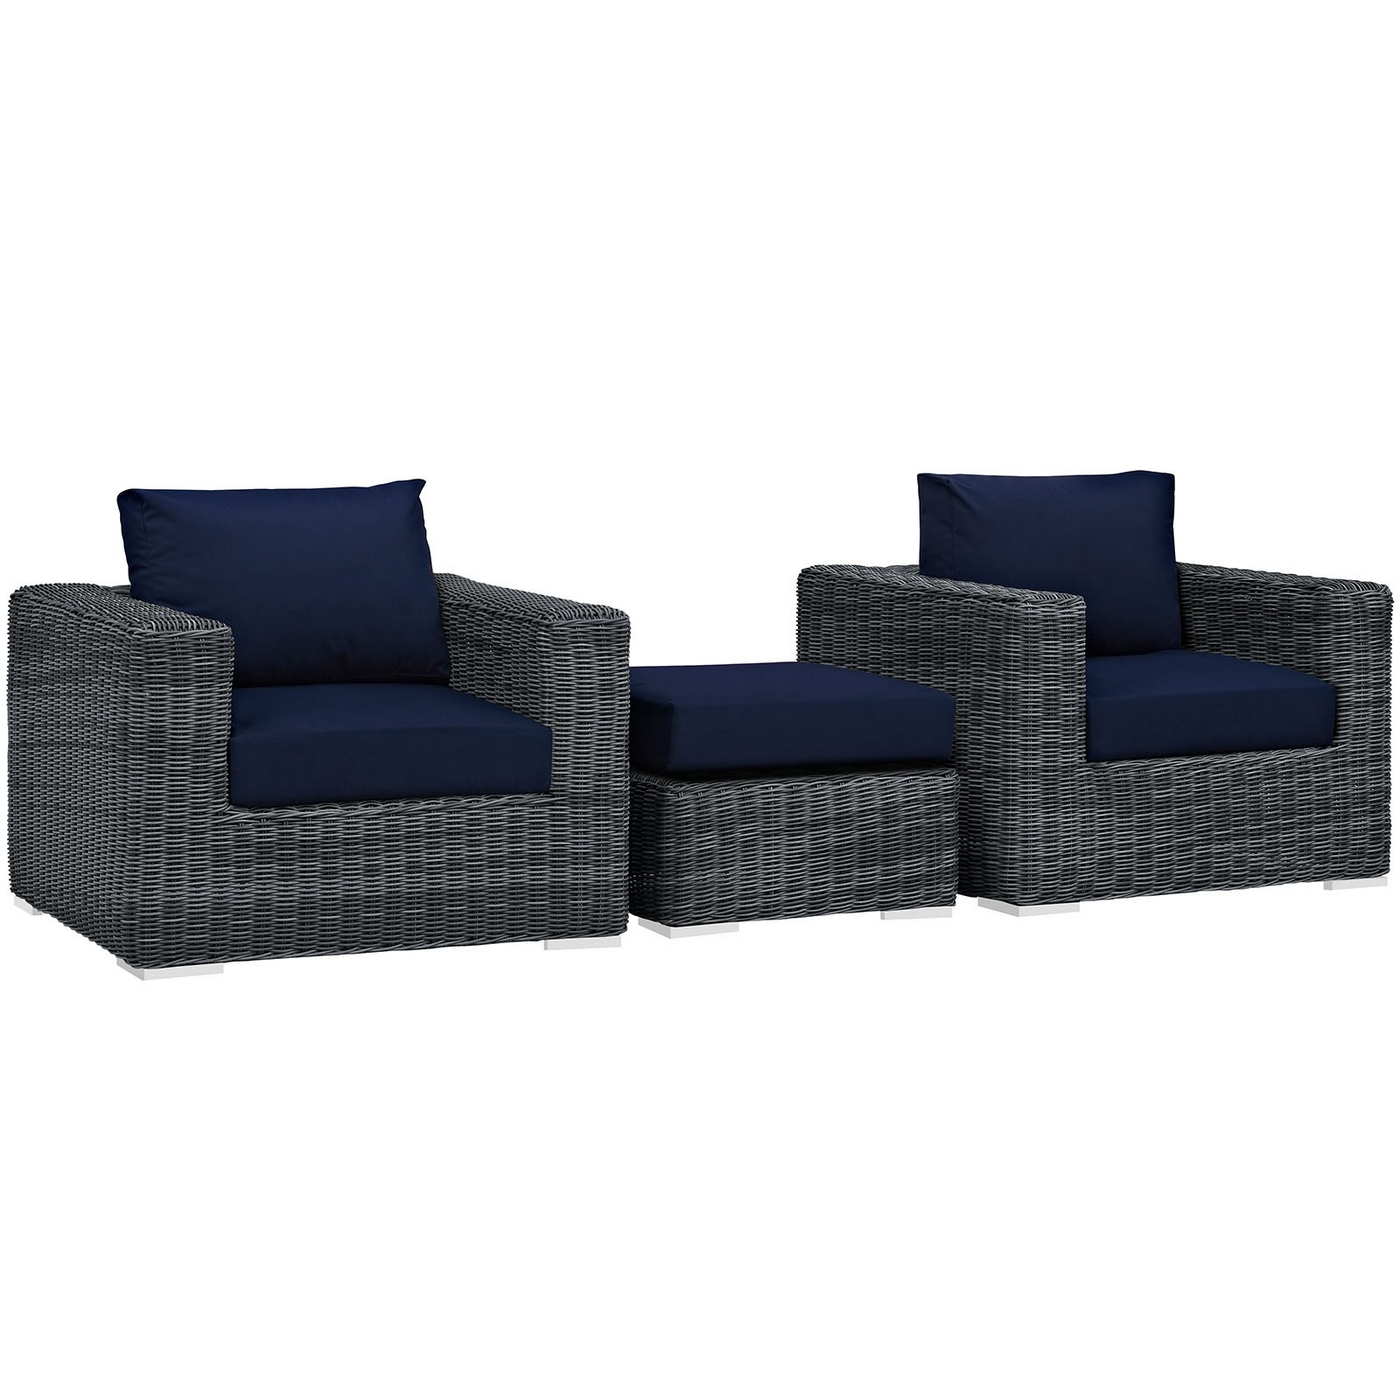 Rattan 3 Piece Sofa Details About Summon Rattan 3 Piece Patio Sunbrella Sectional Sofa Set W Cushions Navy Blue